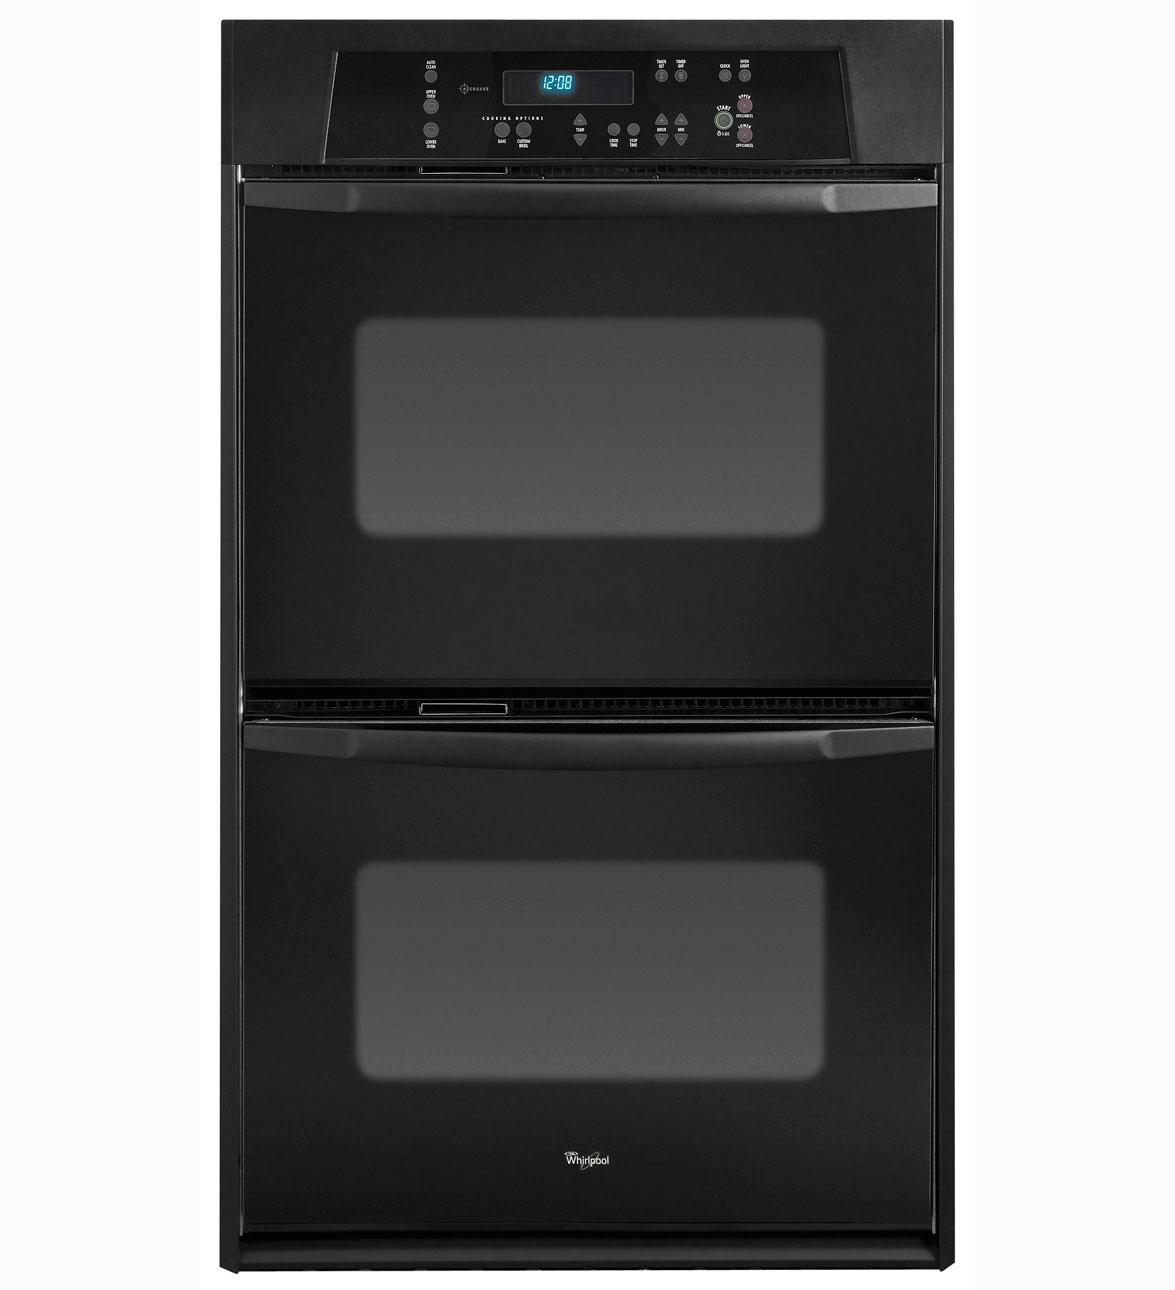 Rbd245prs Whirlpool Rbd245prs Double Wall Ovens